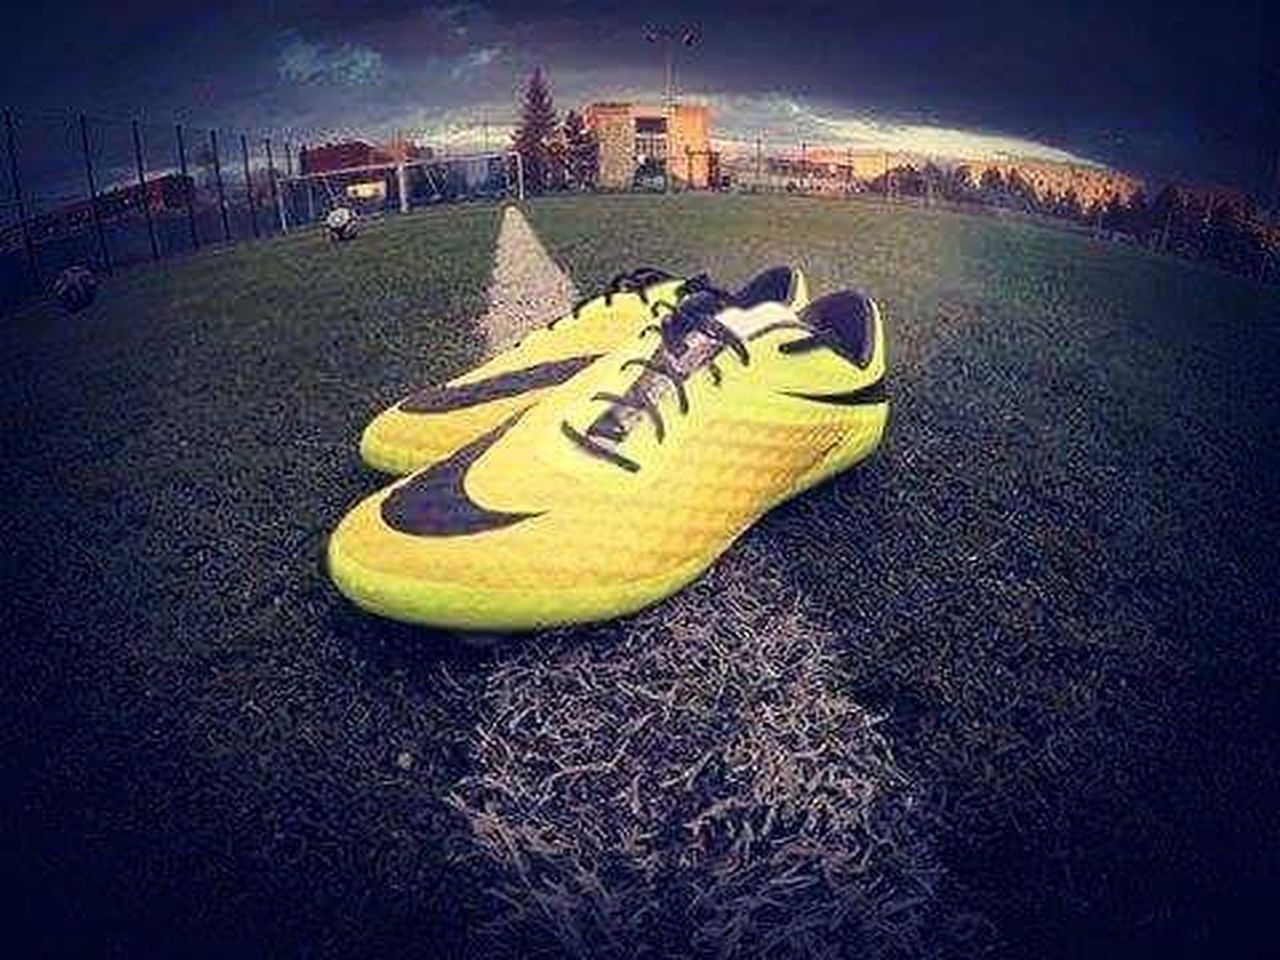 soccer, sport, night, yellow, no people, grass, outdoors, soccer field